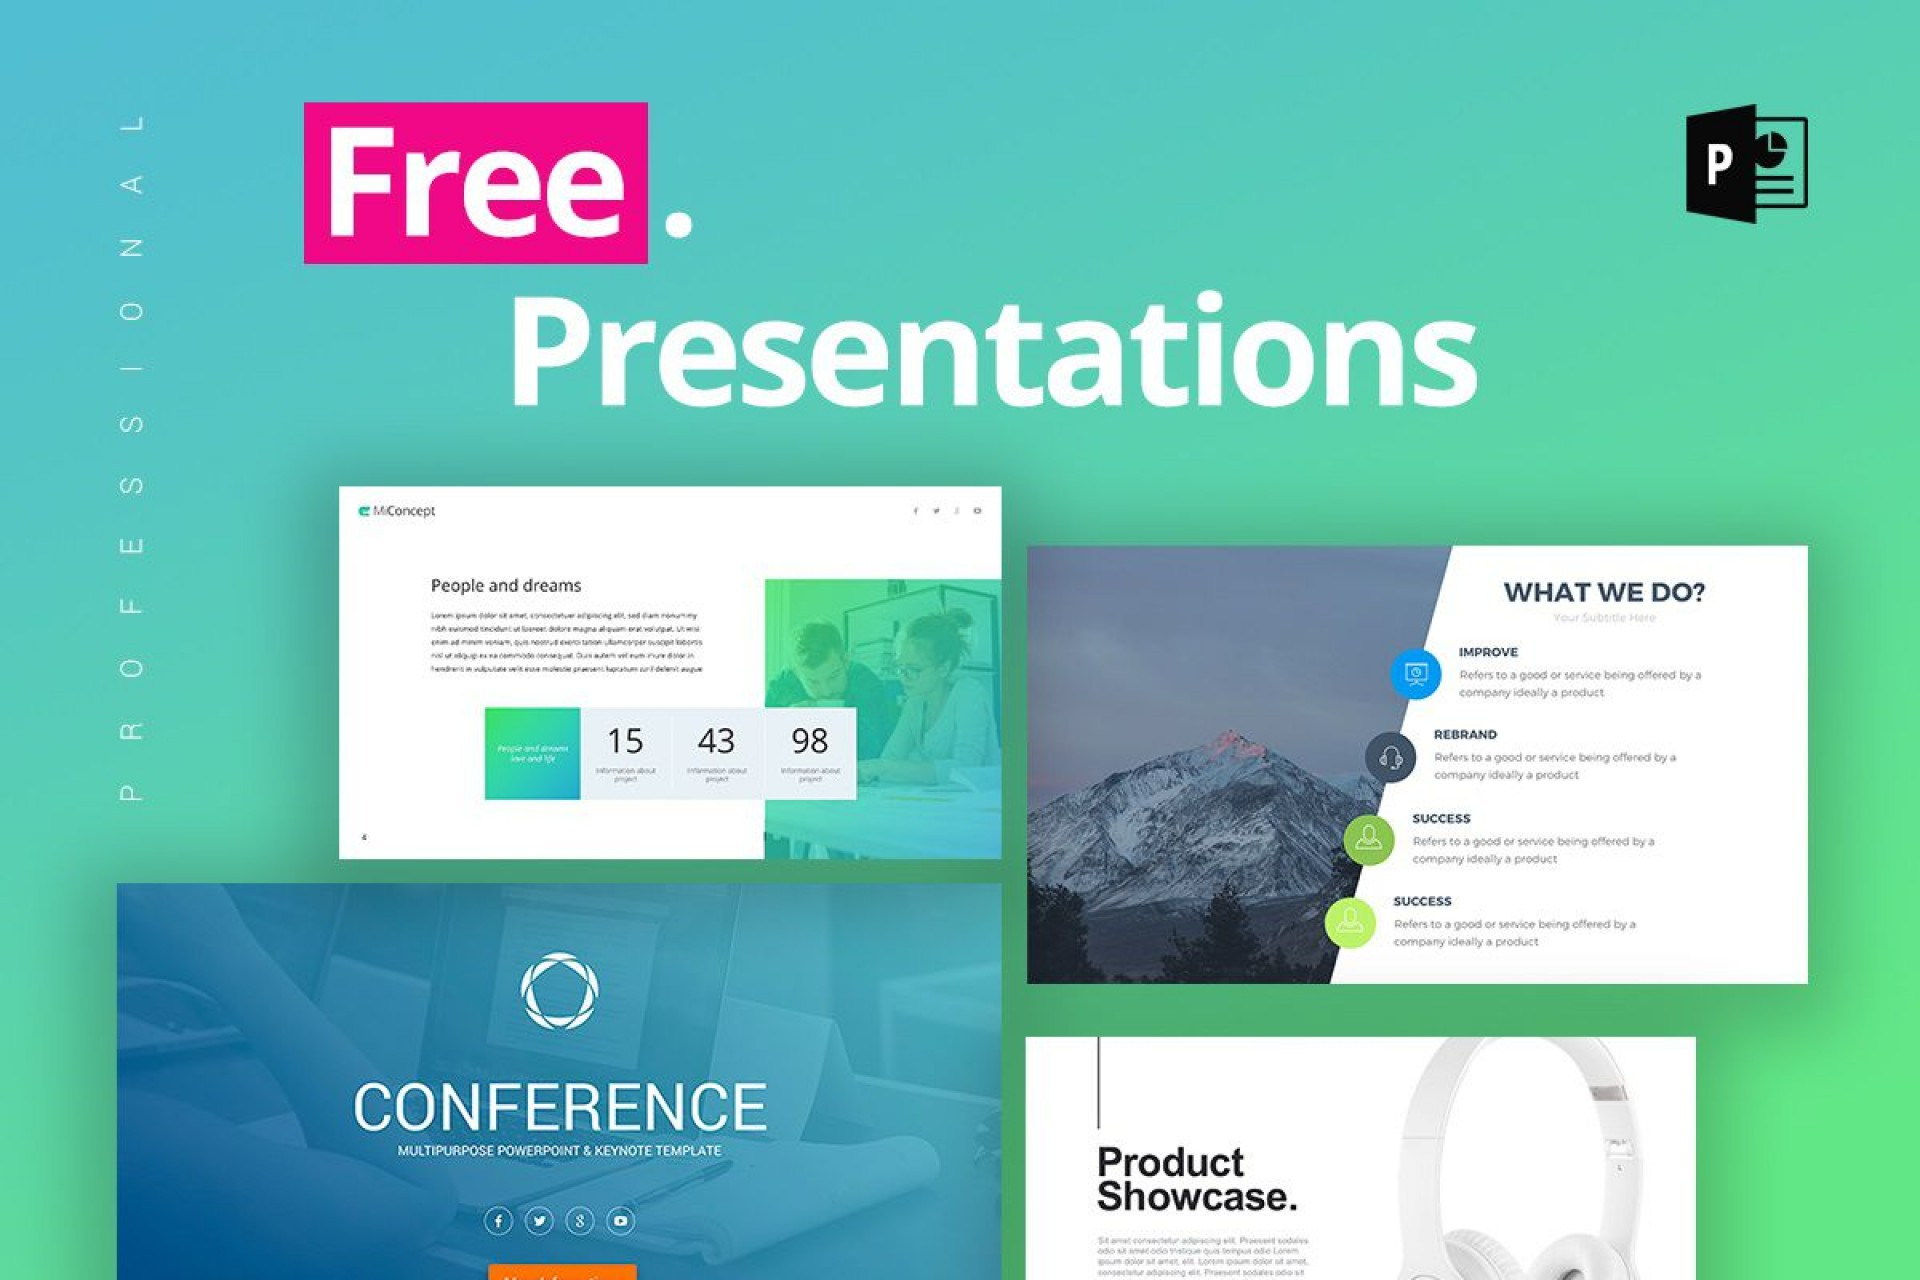 006 Unusual Professional Powerpoint Template Free Photo  Download 2019 Medical Mac1920